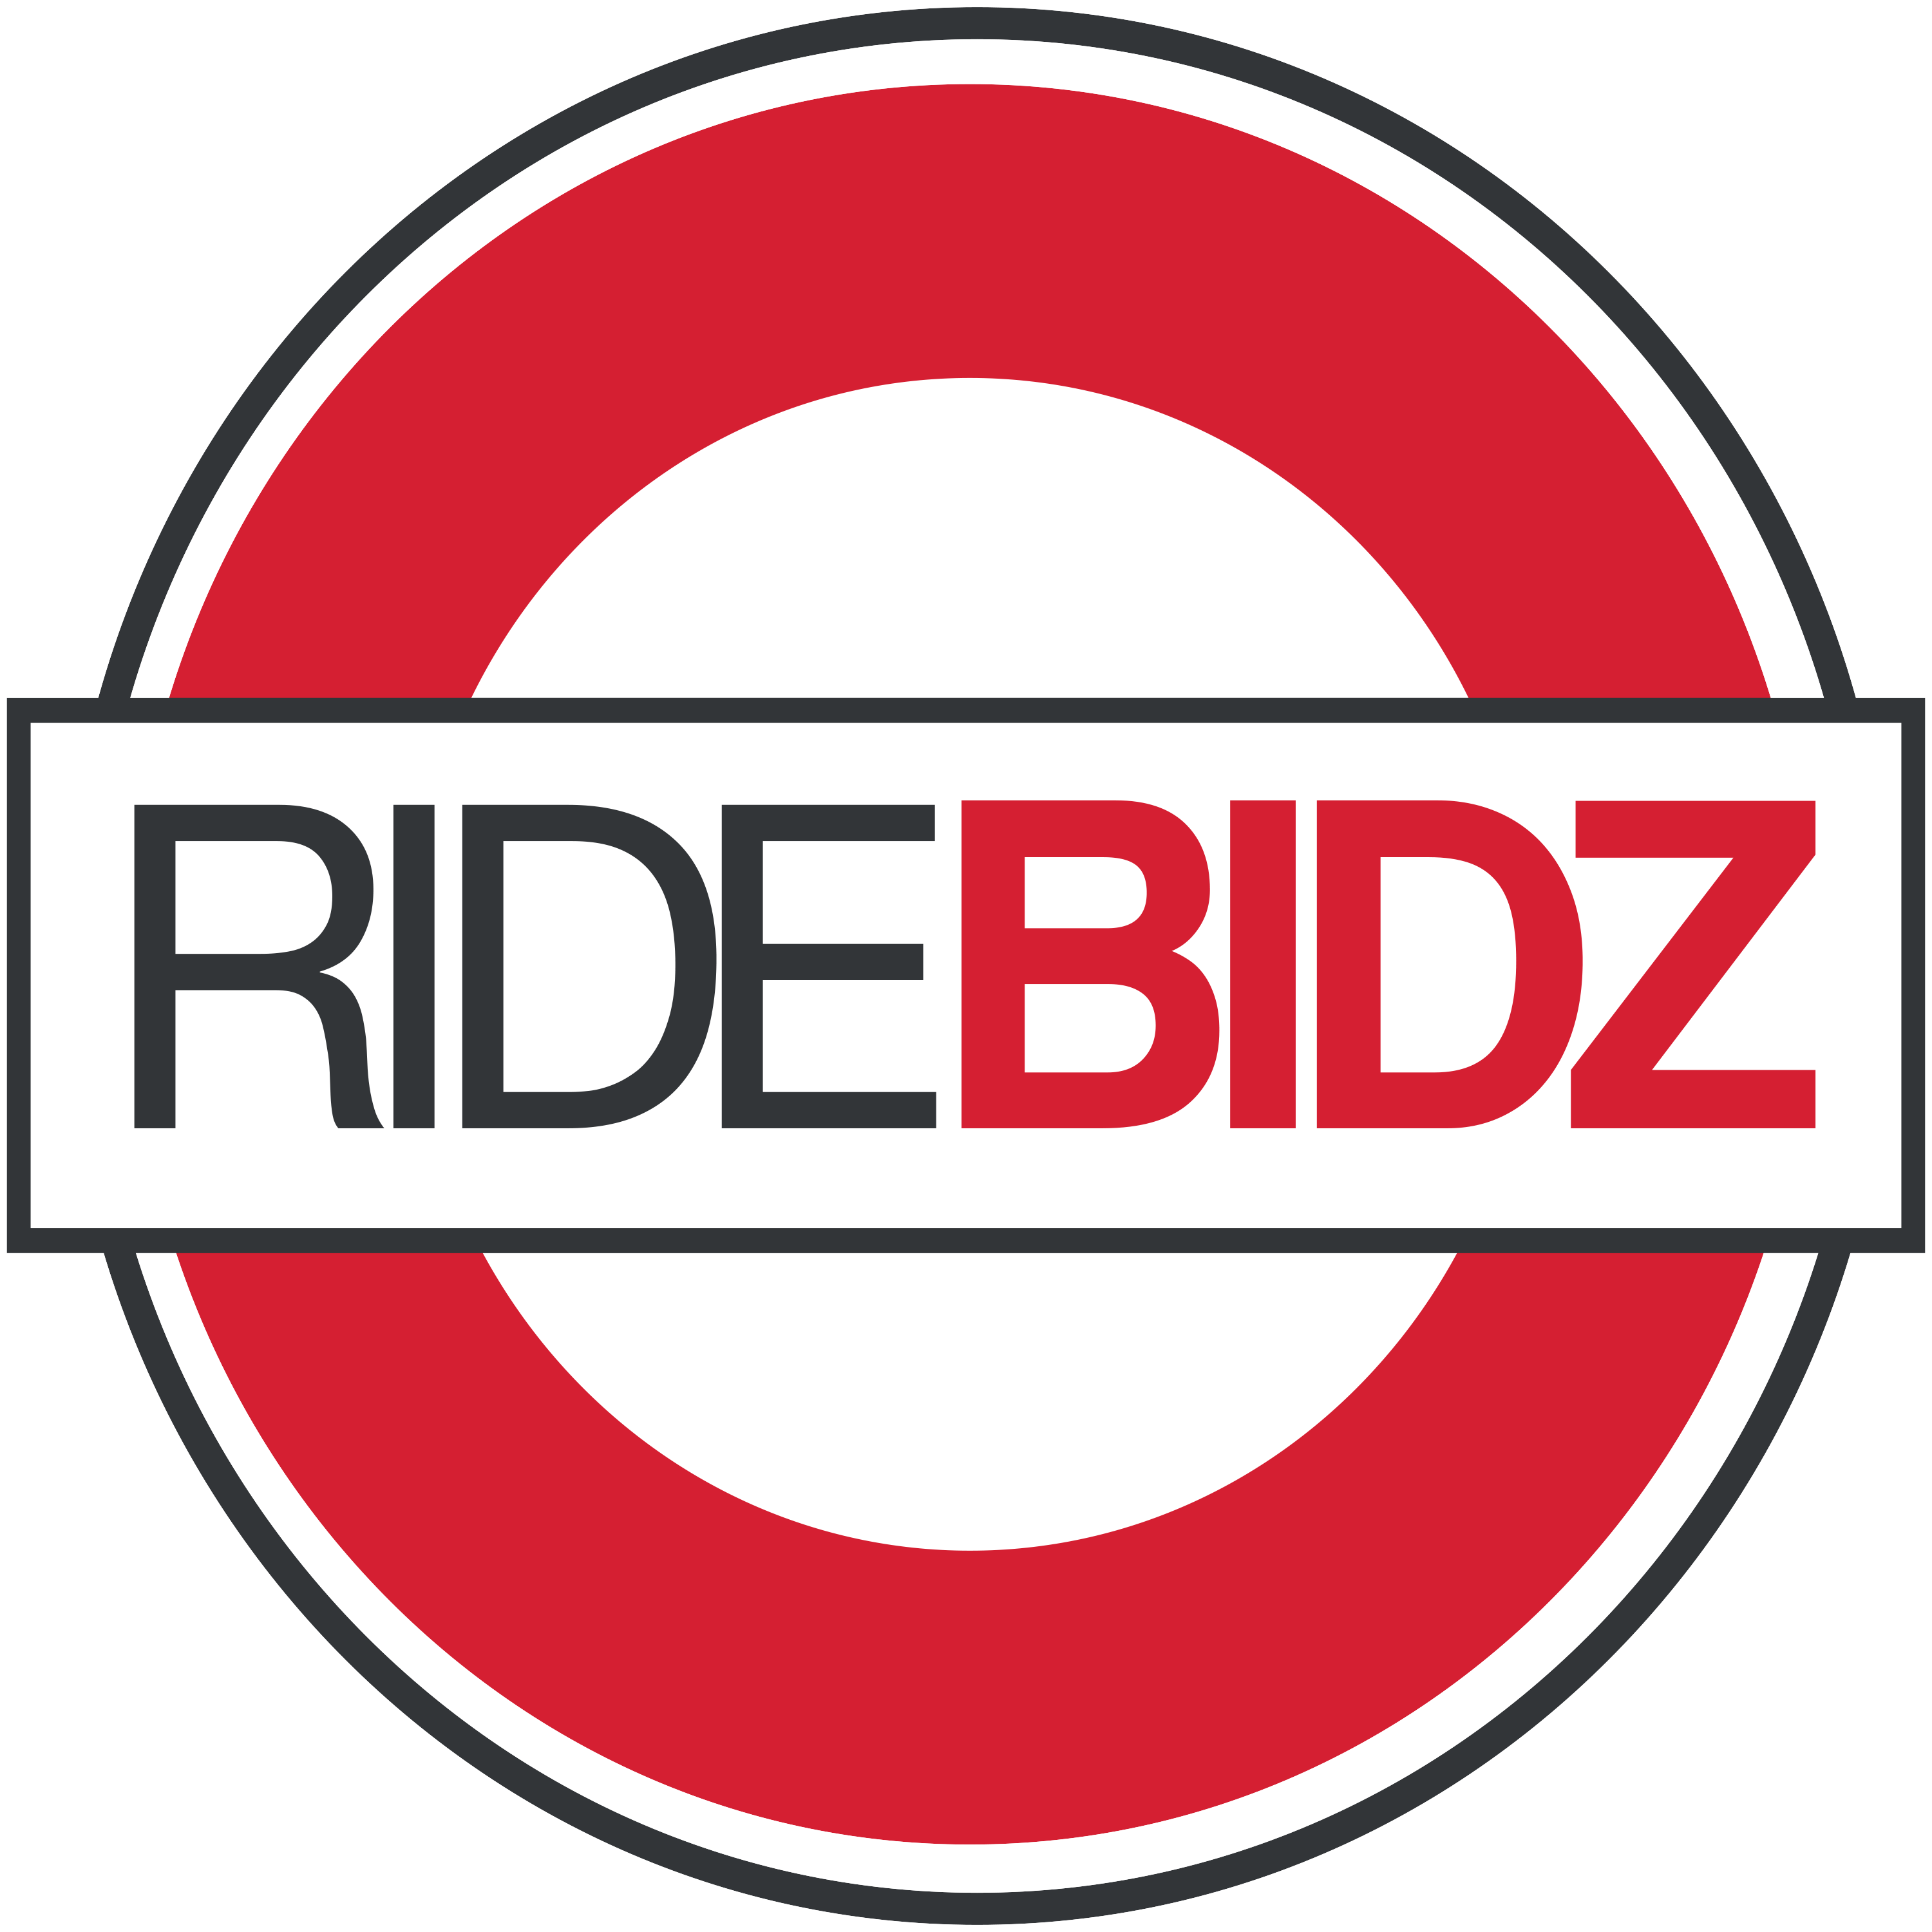 RideBidz Inc and W&B Logistics Inc announce their partnership